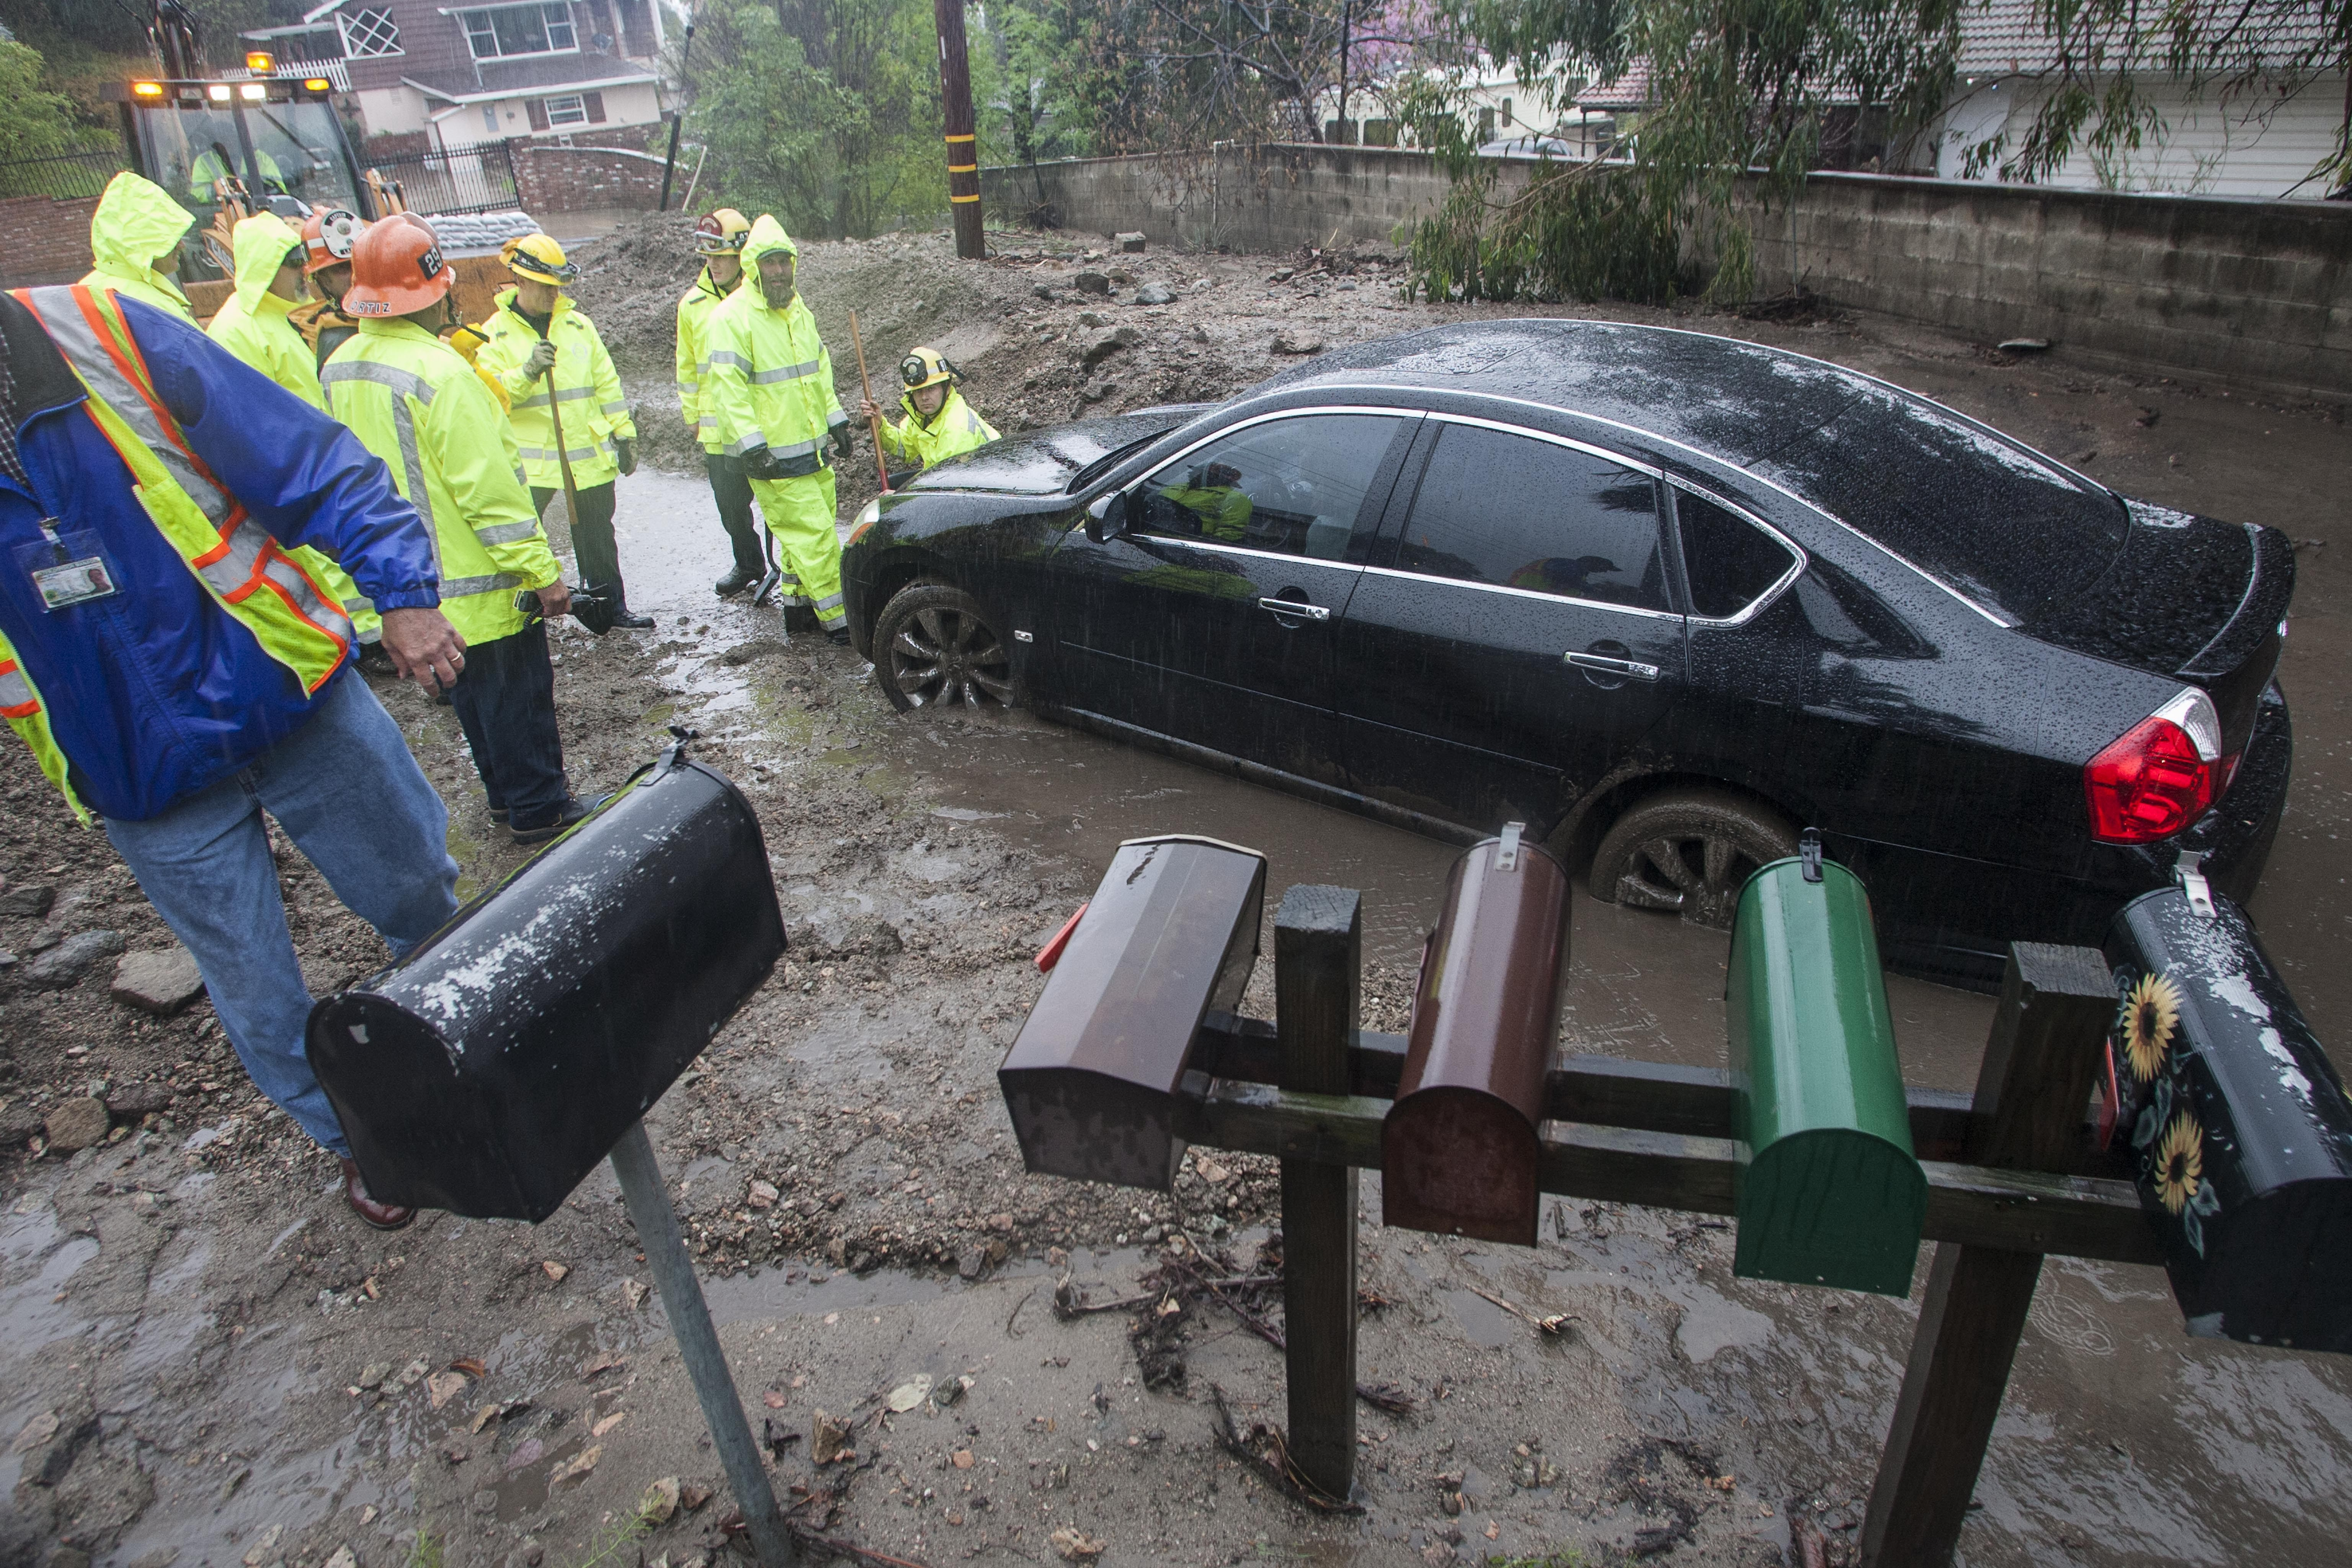 This car was stuck in mud up to its axles Friday after a mudslide in Glendora, Calif. Critically needed rain has given the state some relief but some problems as well.